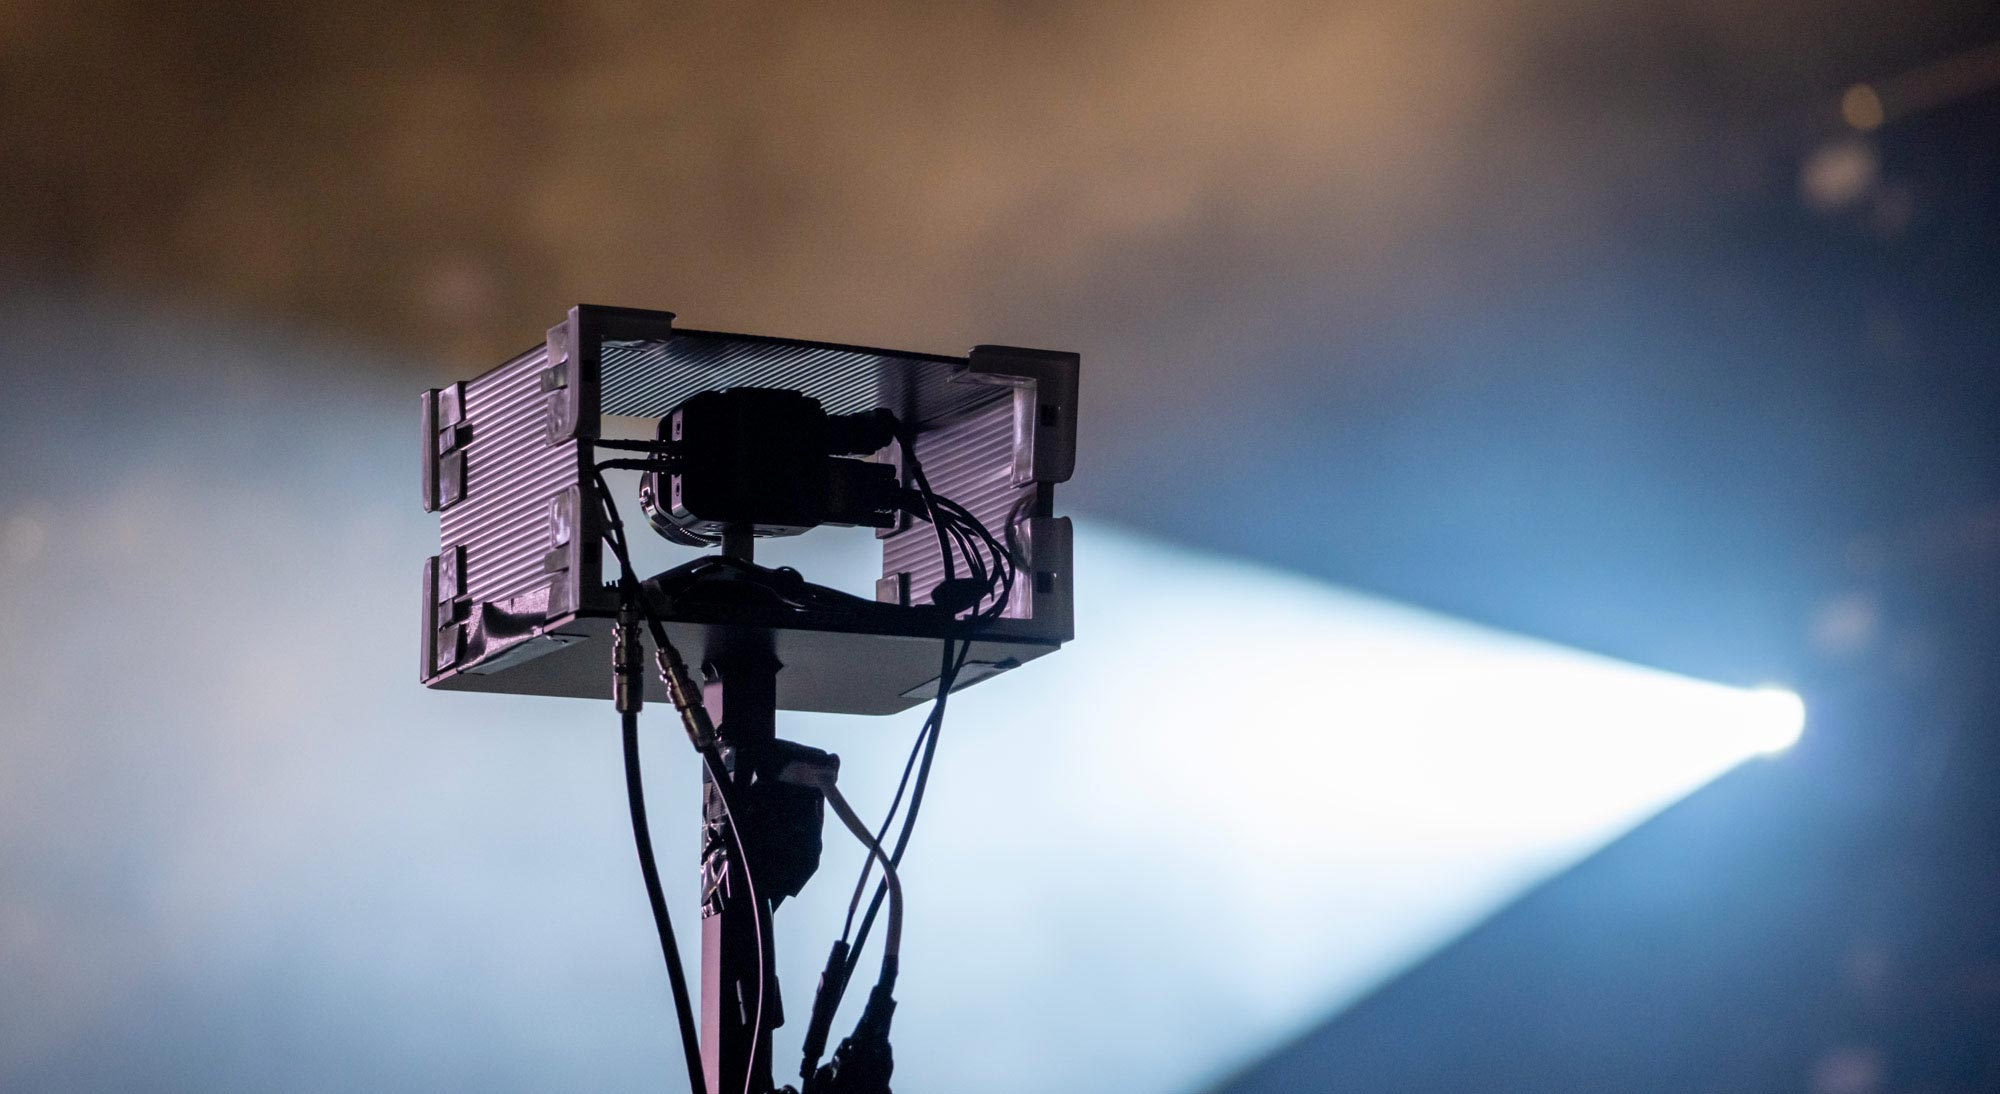 24 Blackmagic cameras used for a streamed concert